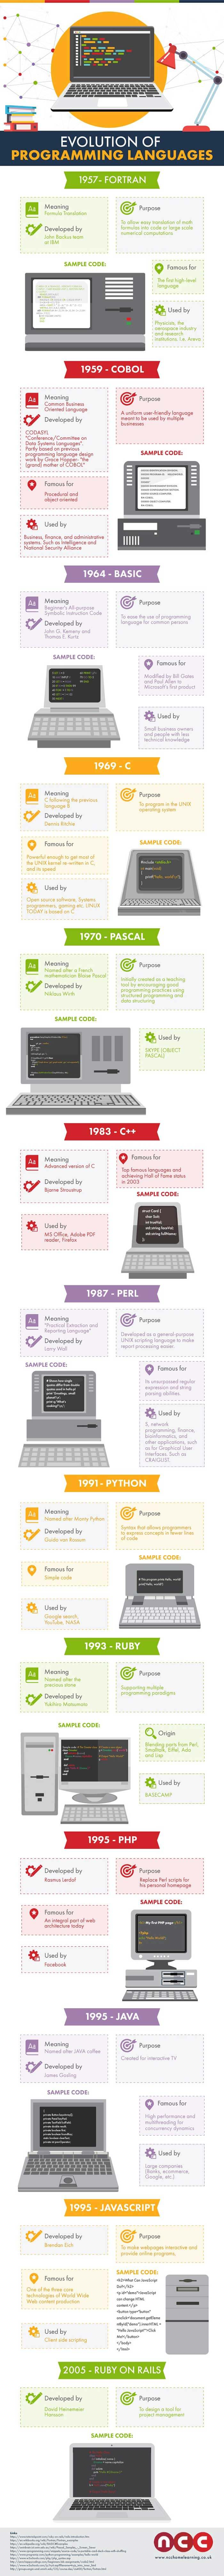 computer-programming-language-history